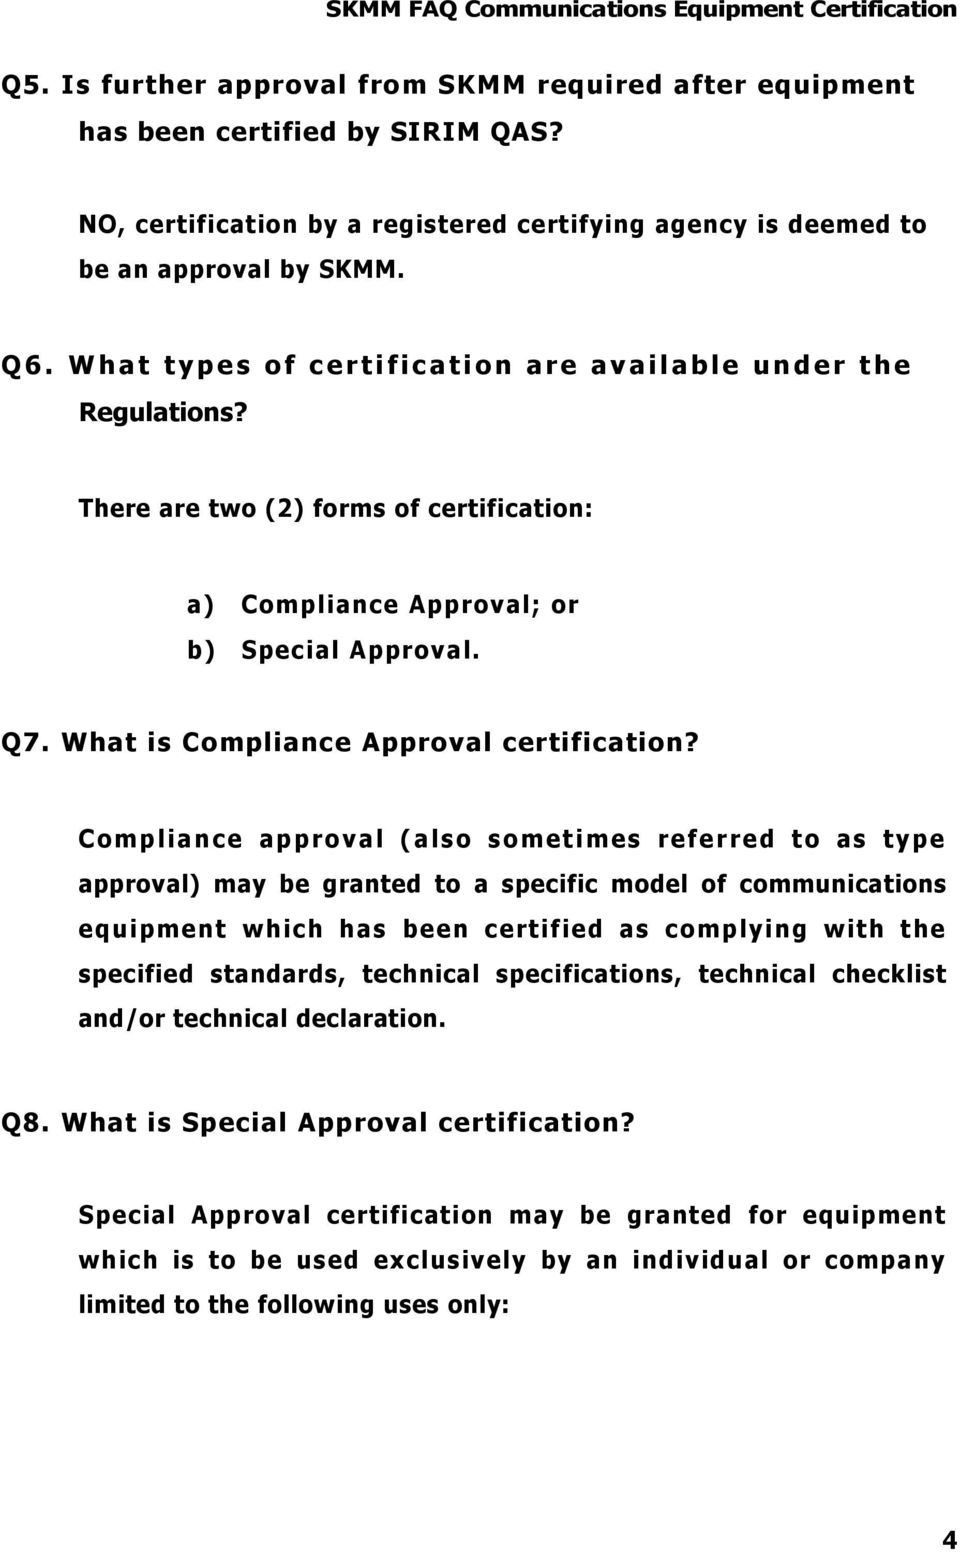 What is Compliance Approval certification?